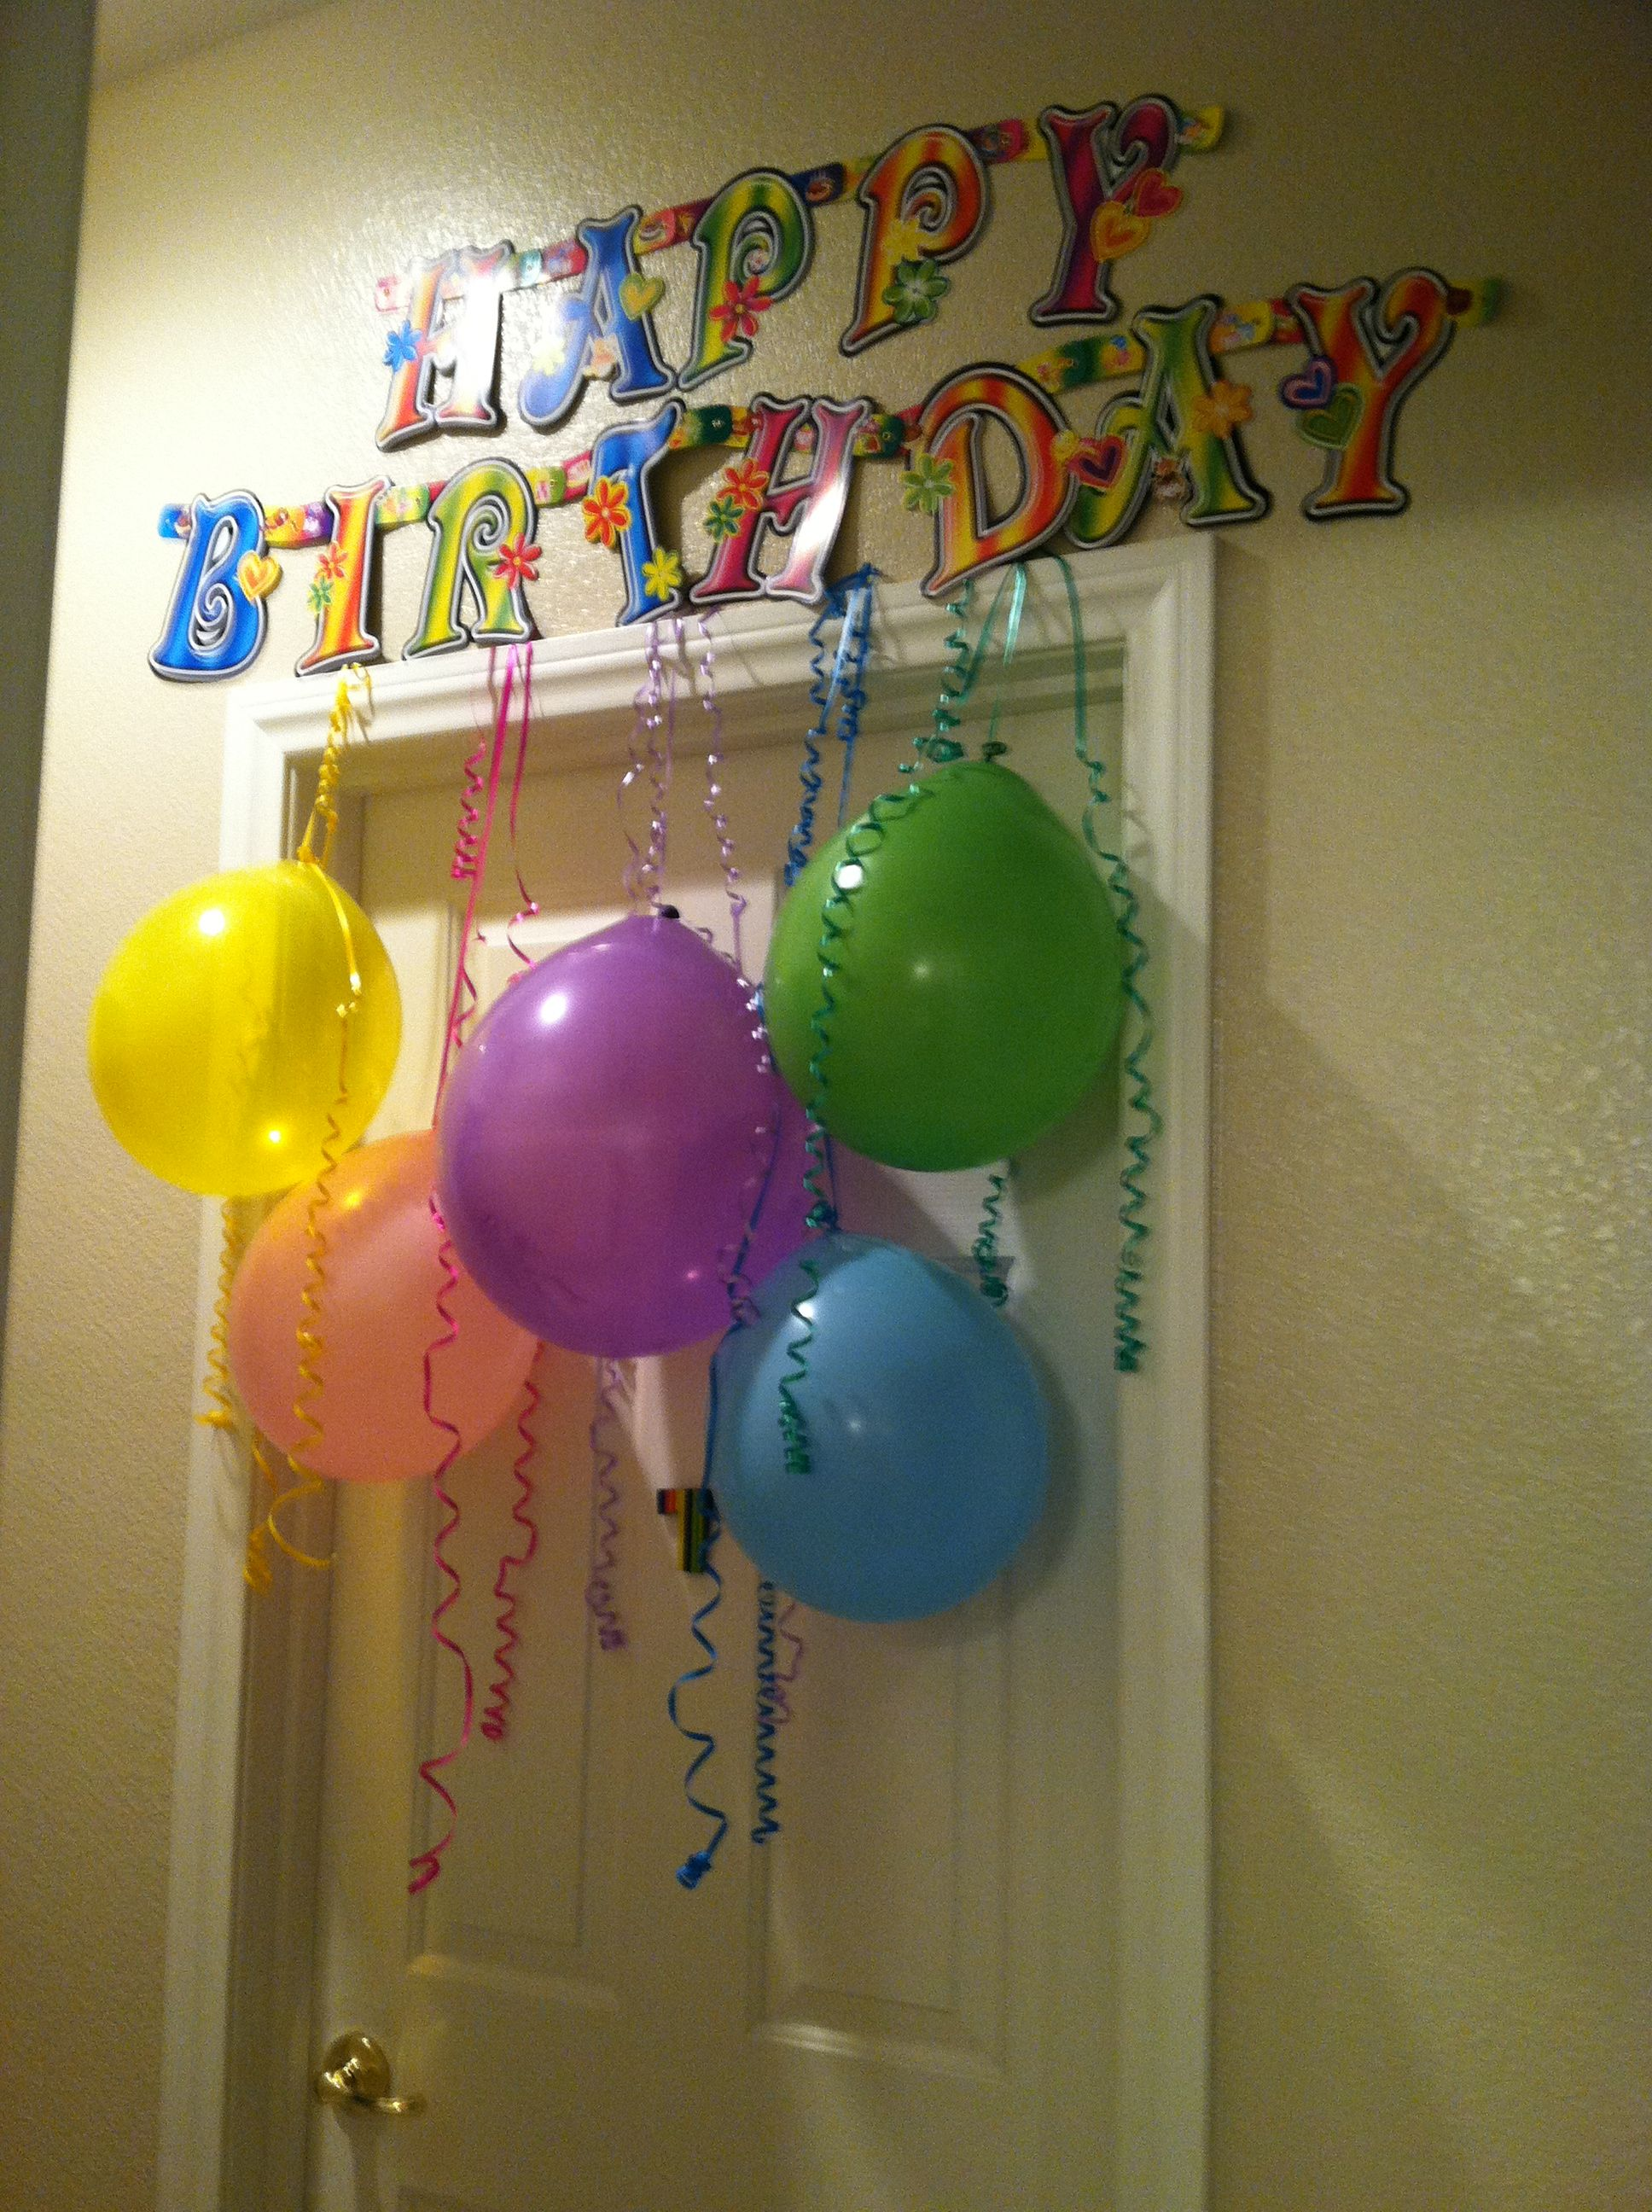 I Decorated My Daughter S Bedroom Door For A Birthday Morning Surprise She S Going To Love I Birthday Morning Birthday Morning Surprise Kids Birthday Morning